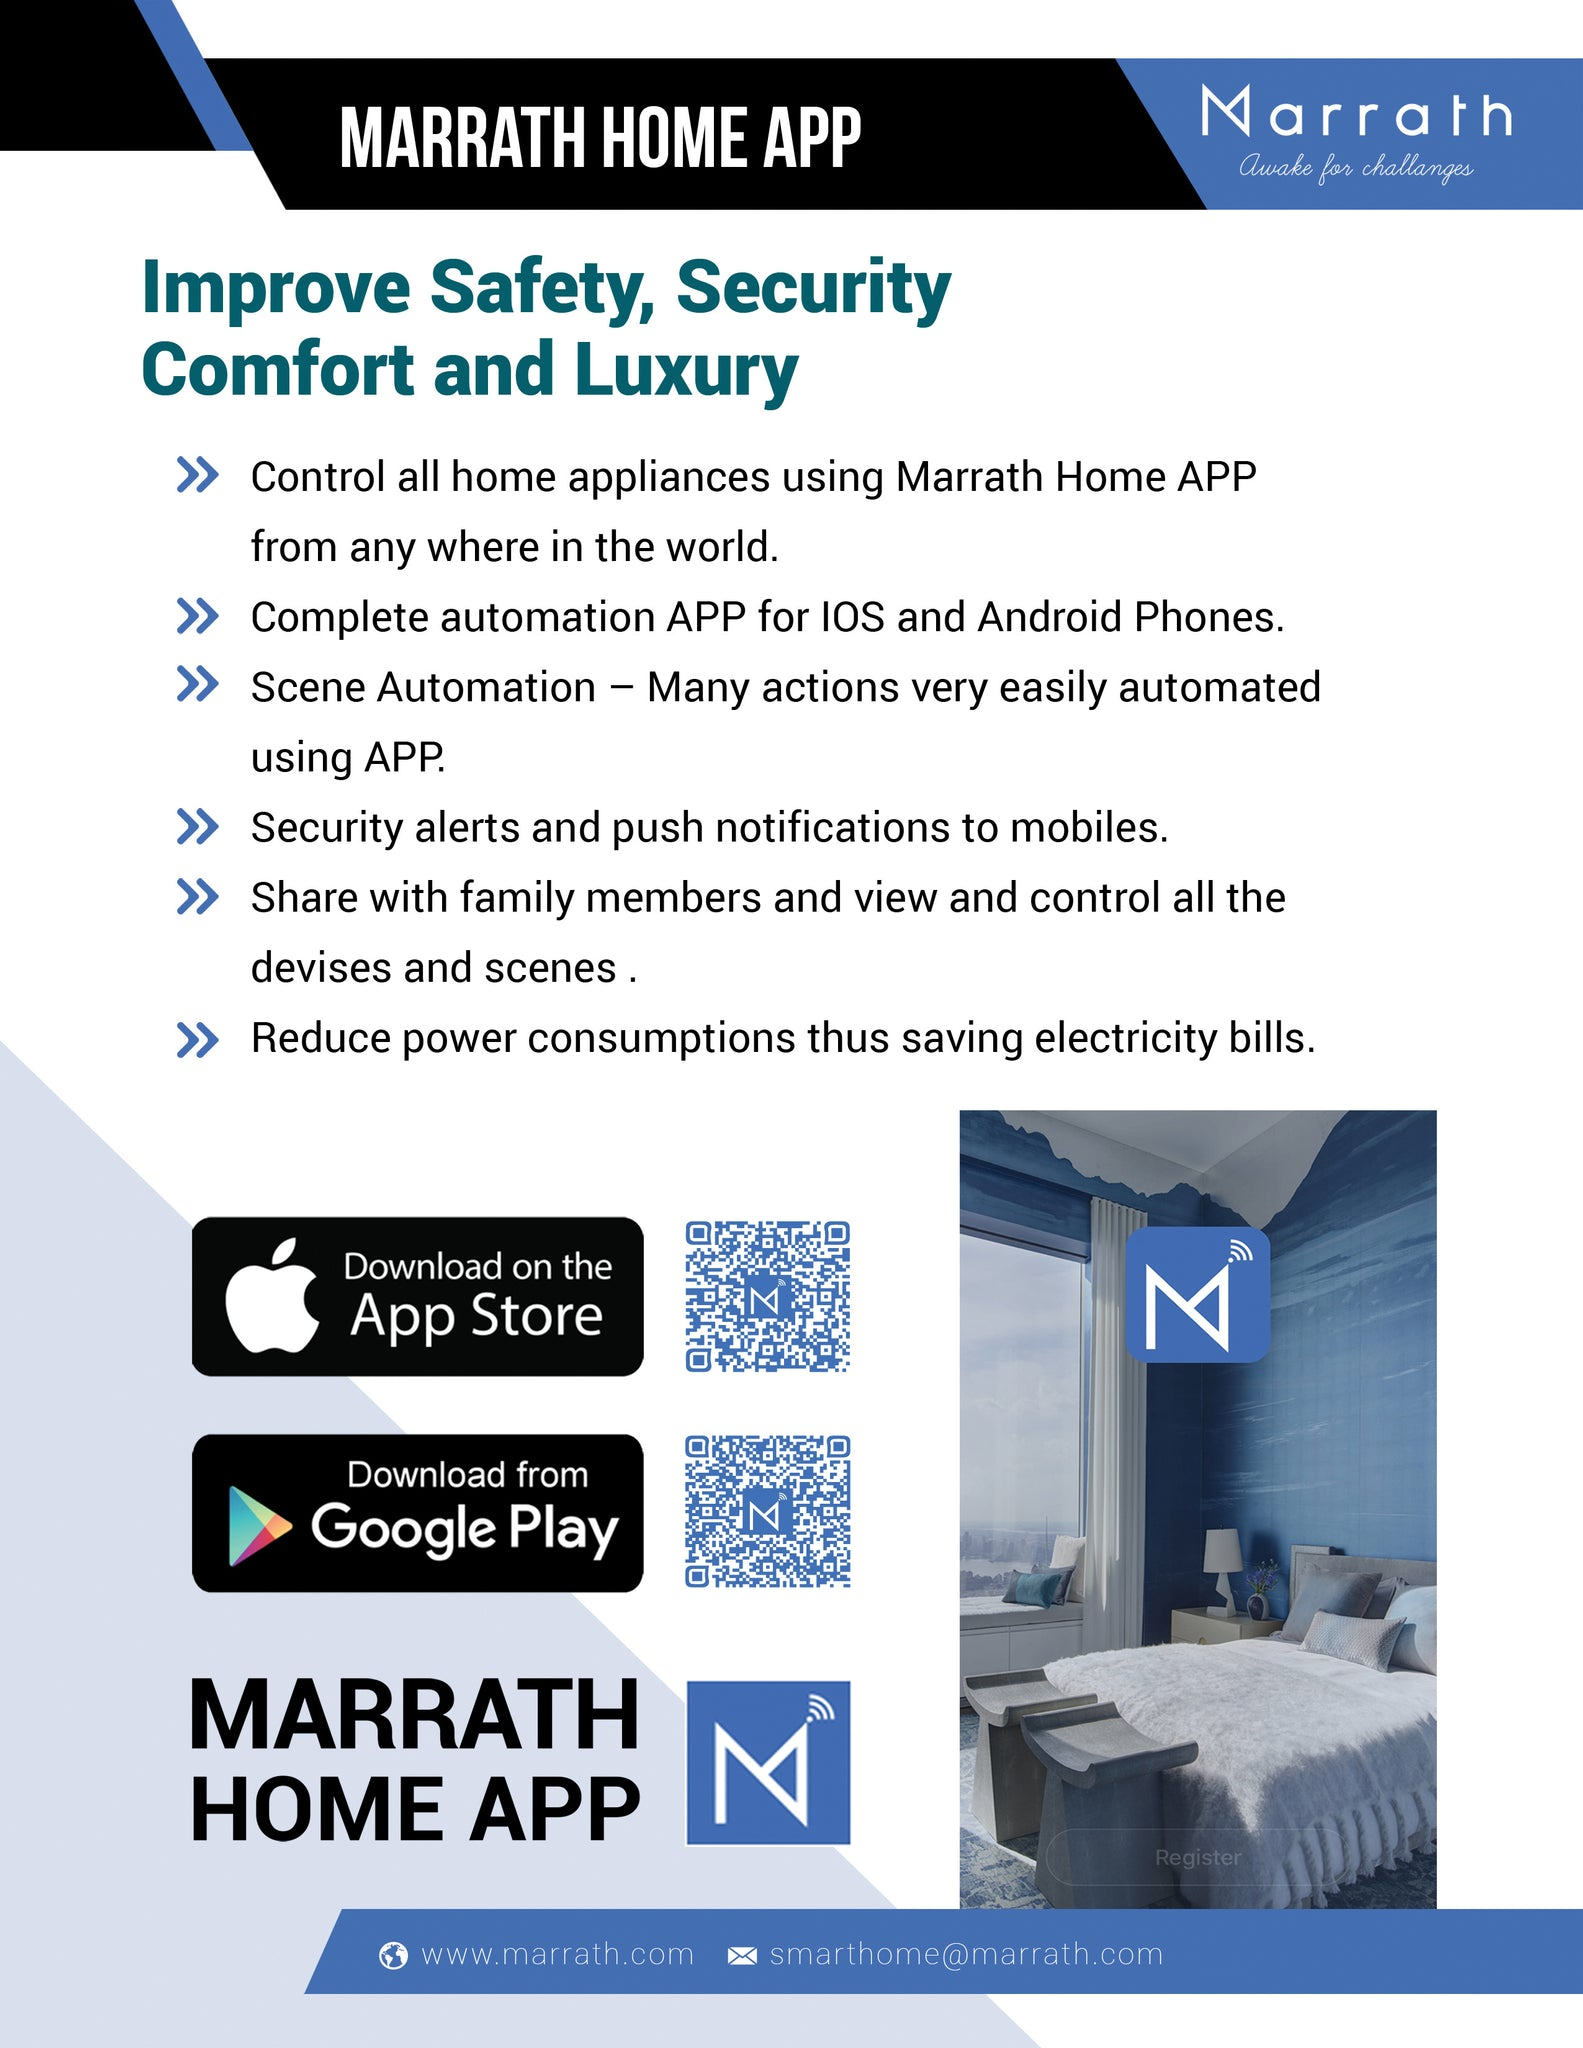 Marrath Smart WiFi multi plug to control devices from